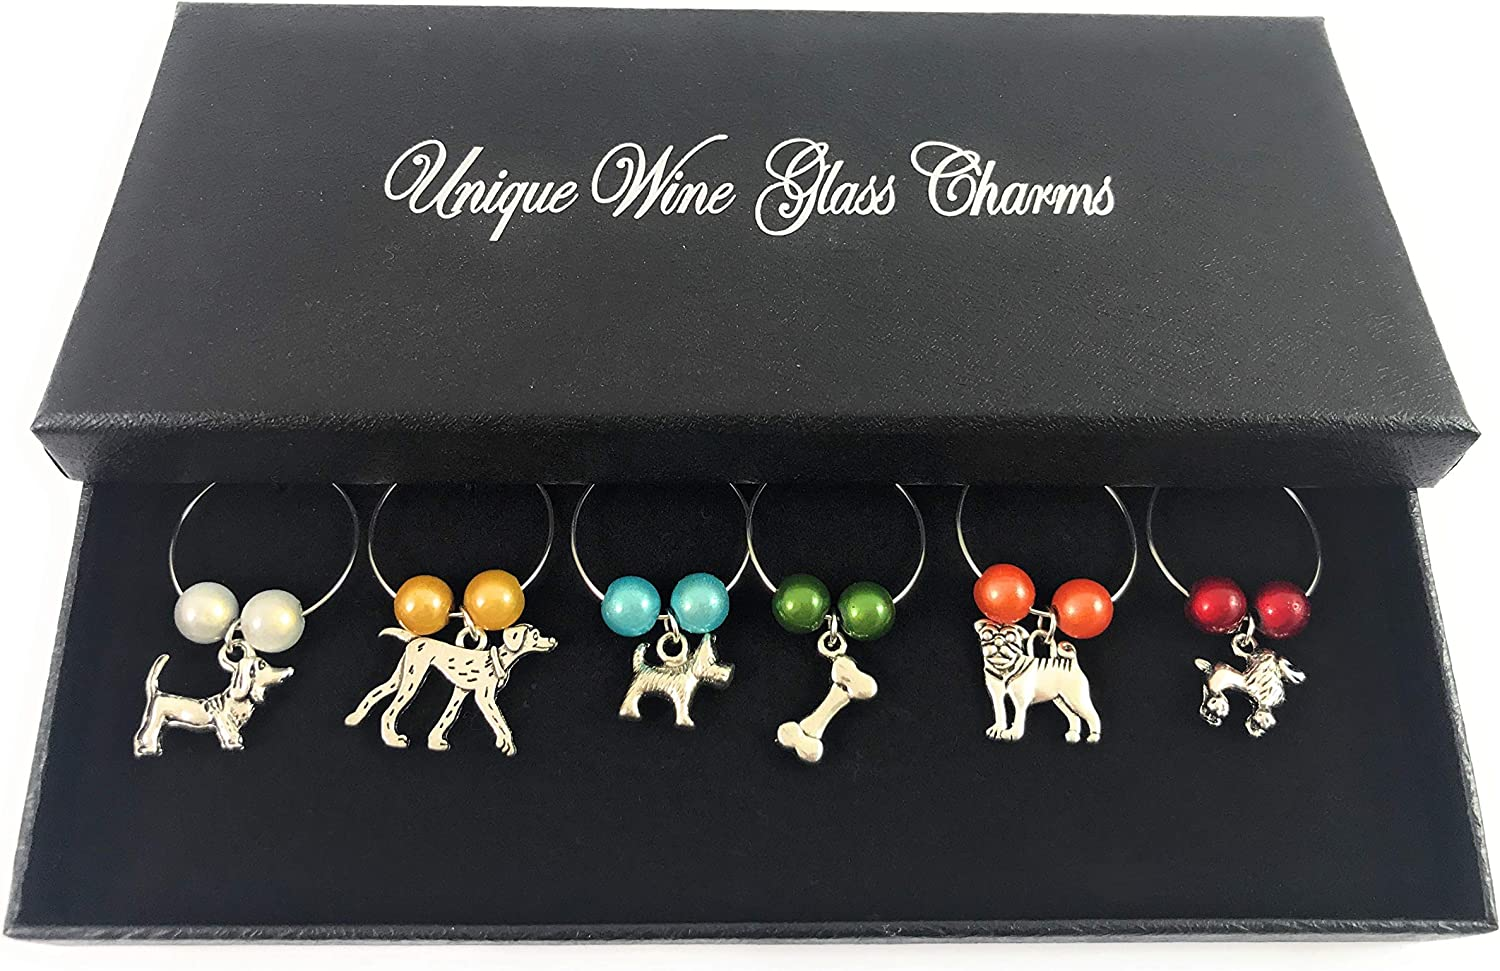 Set of 6 Handmade Wine Lovers Wine Glass Charms with Gift Box by Libbys Market Place